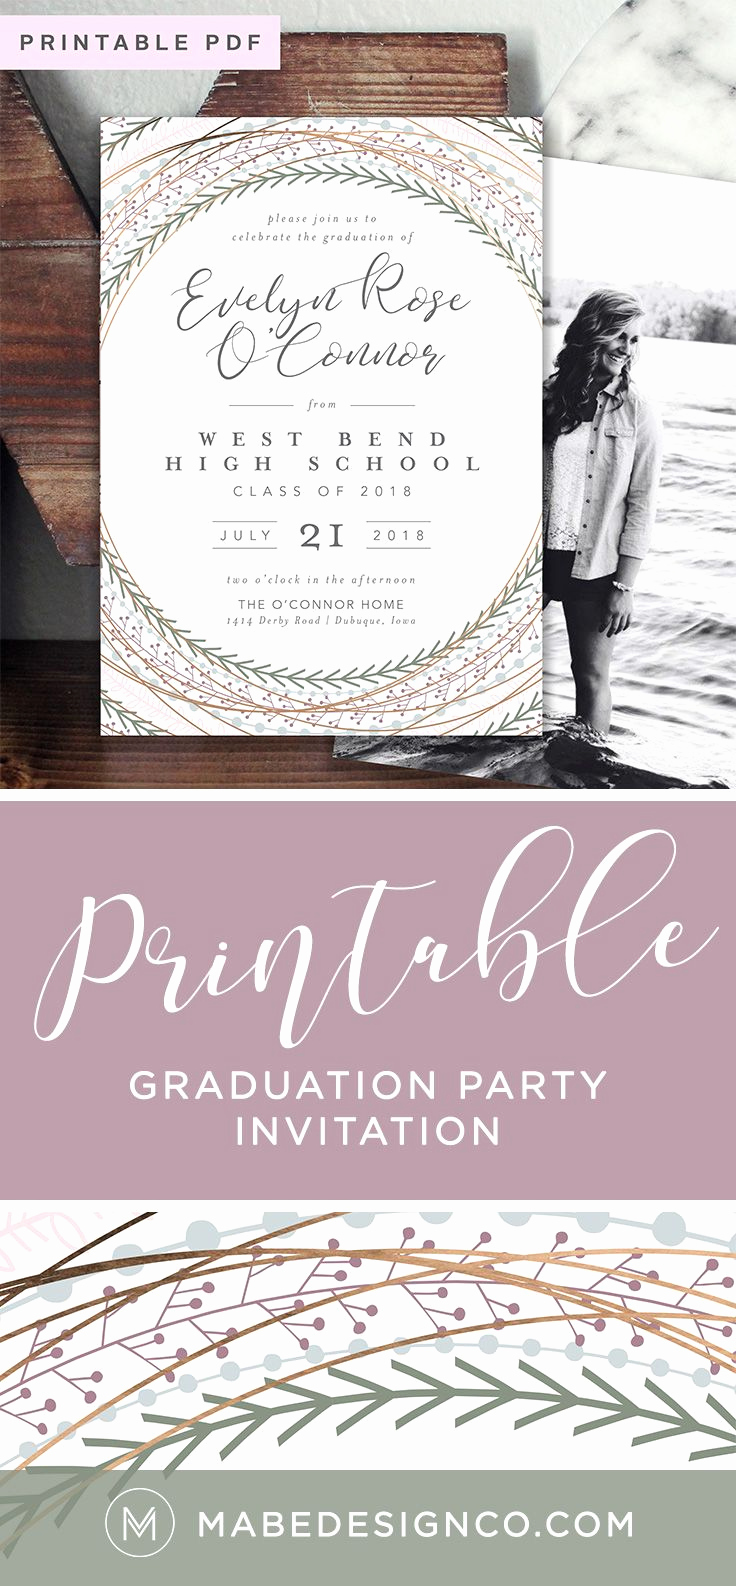 Graduation Party Invitation Text Luxury Best 25 Graduation Invitation Wording Ideas On Pinterest